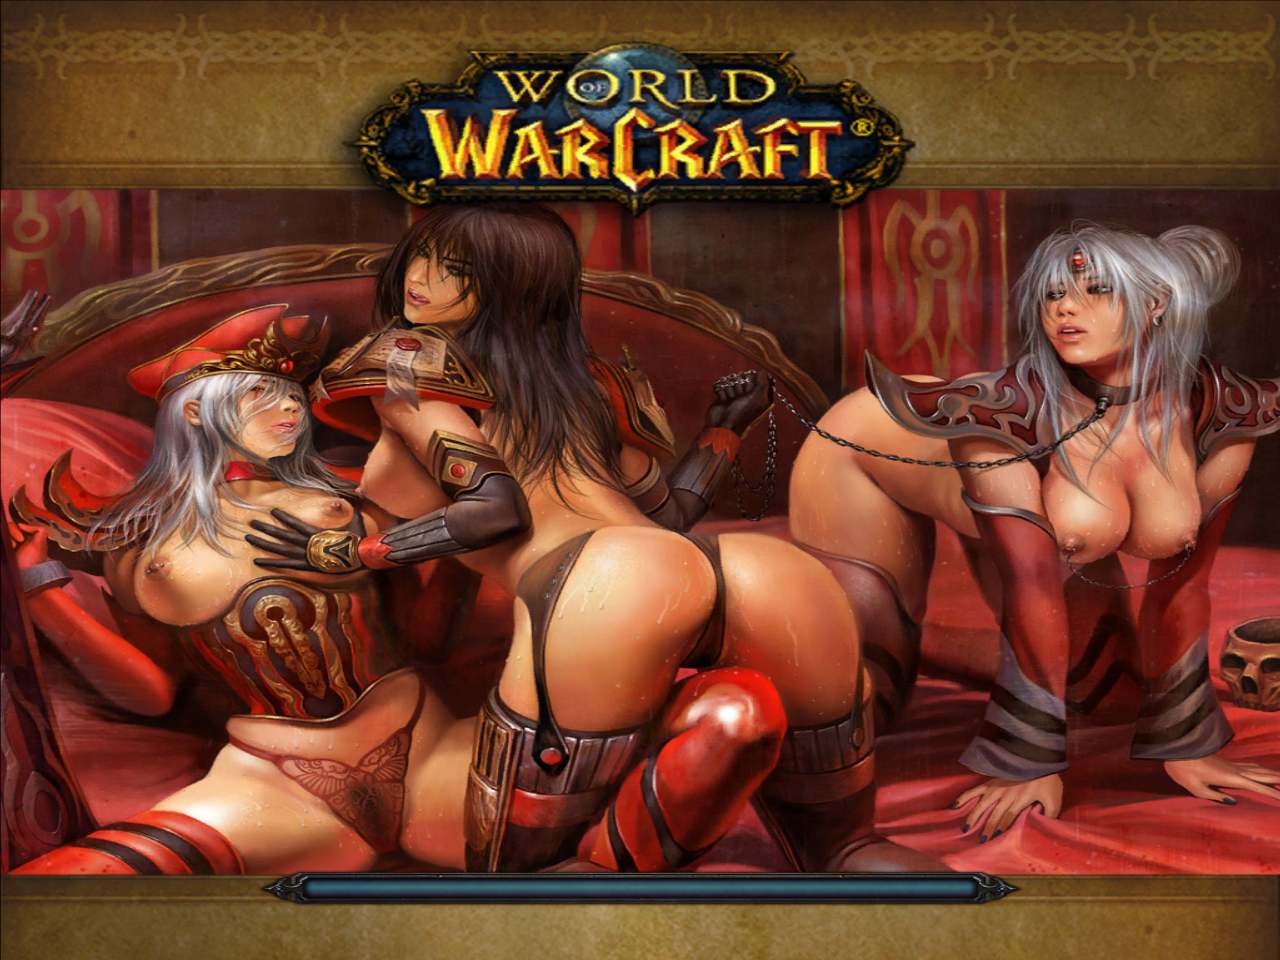 Sexy naked girl warcraft sex download